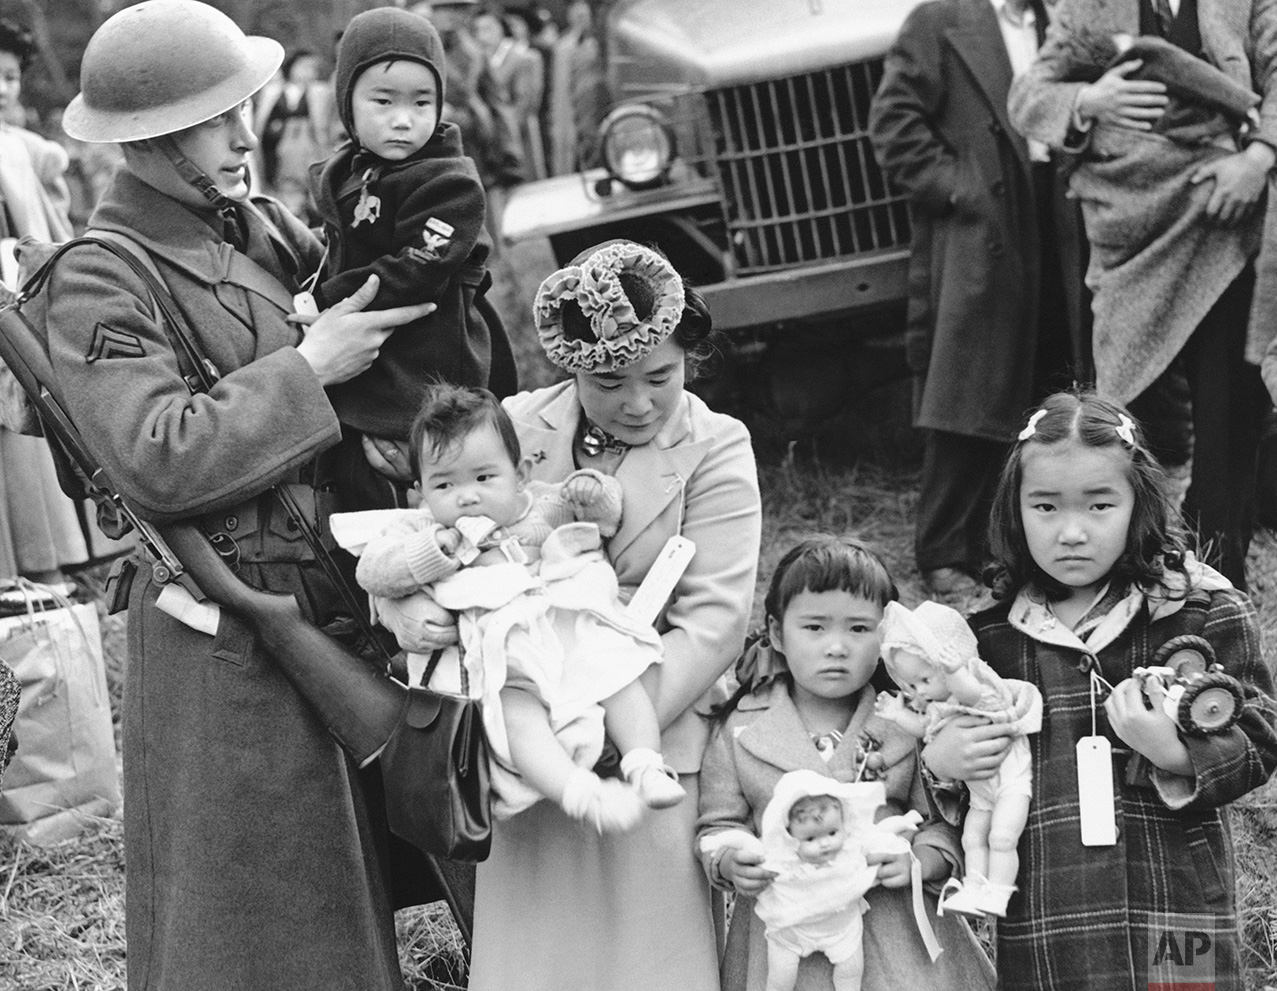 In this March 30, 1942 photo, Cpl. George Bushy, left, a member of the military guard which supervised the departure of 237 Japanese people for California, holds the youngest child of Shigeho Kitamoto, center, as she and her children are evacuated from Bainbridge Island, Wash. Roughly 120,000 Japanese immigrants and Japanese-Americans were sent to desolate camps that dotted the West because the government claimed they might plot against the U.S. (AP Photo)